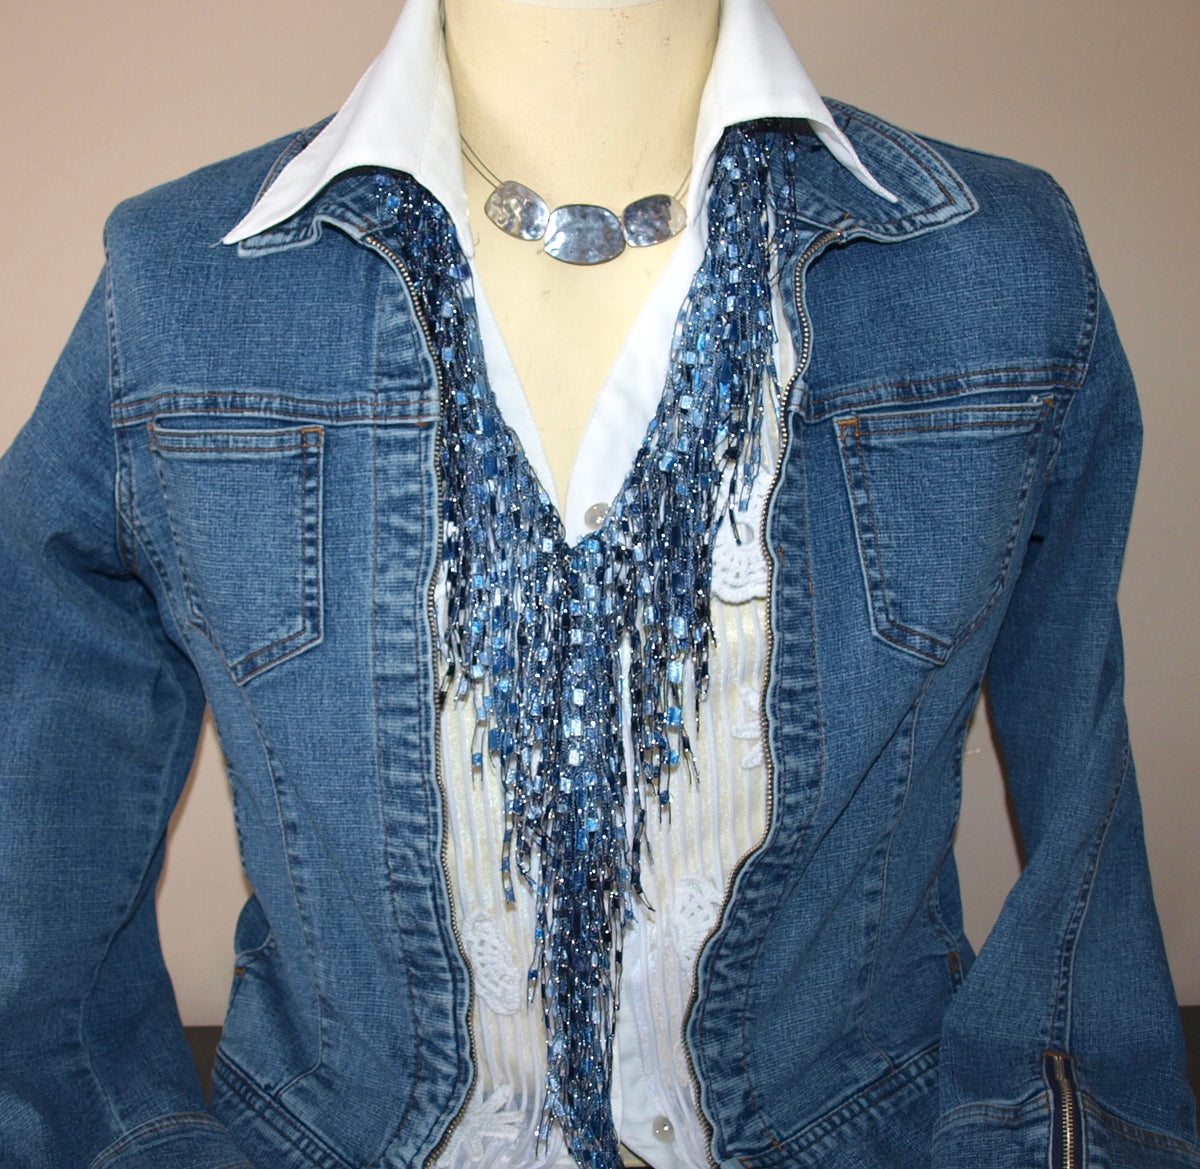 mannequin showing blue jean jacket and blue scarf necklace